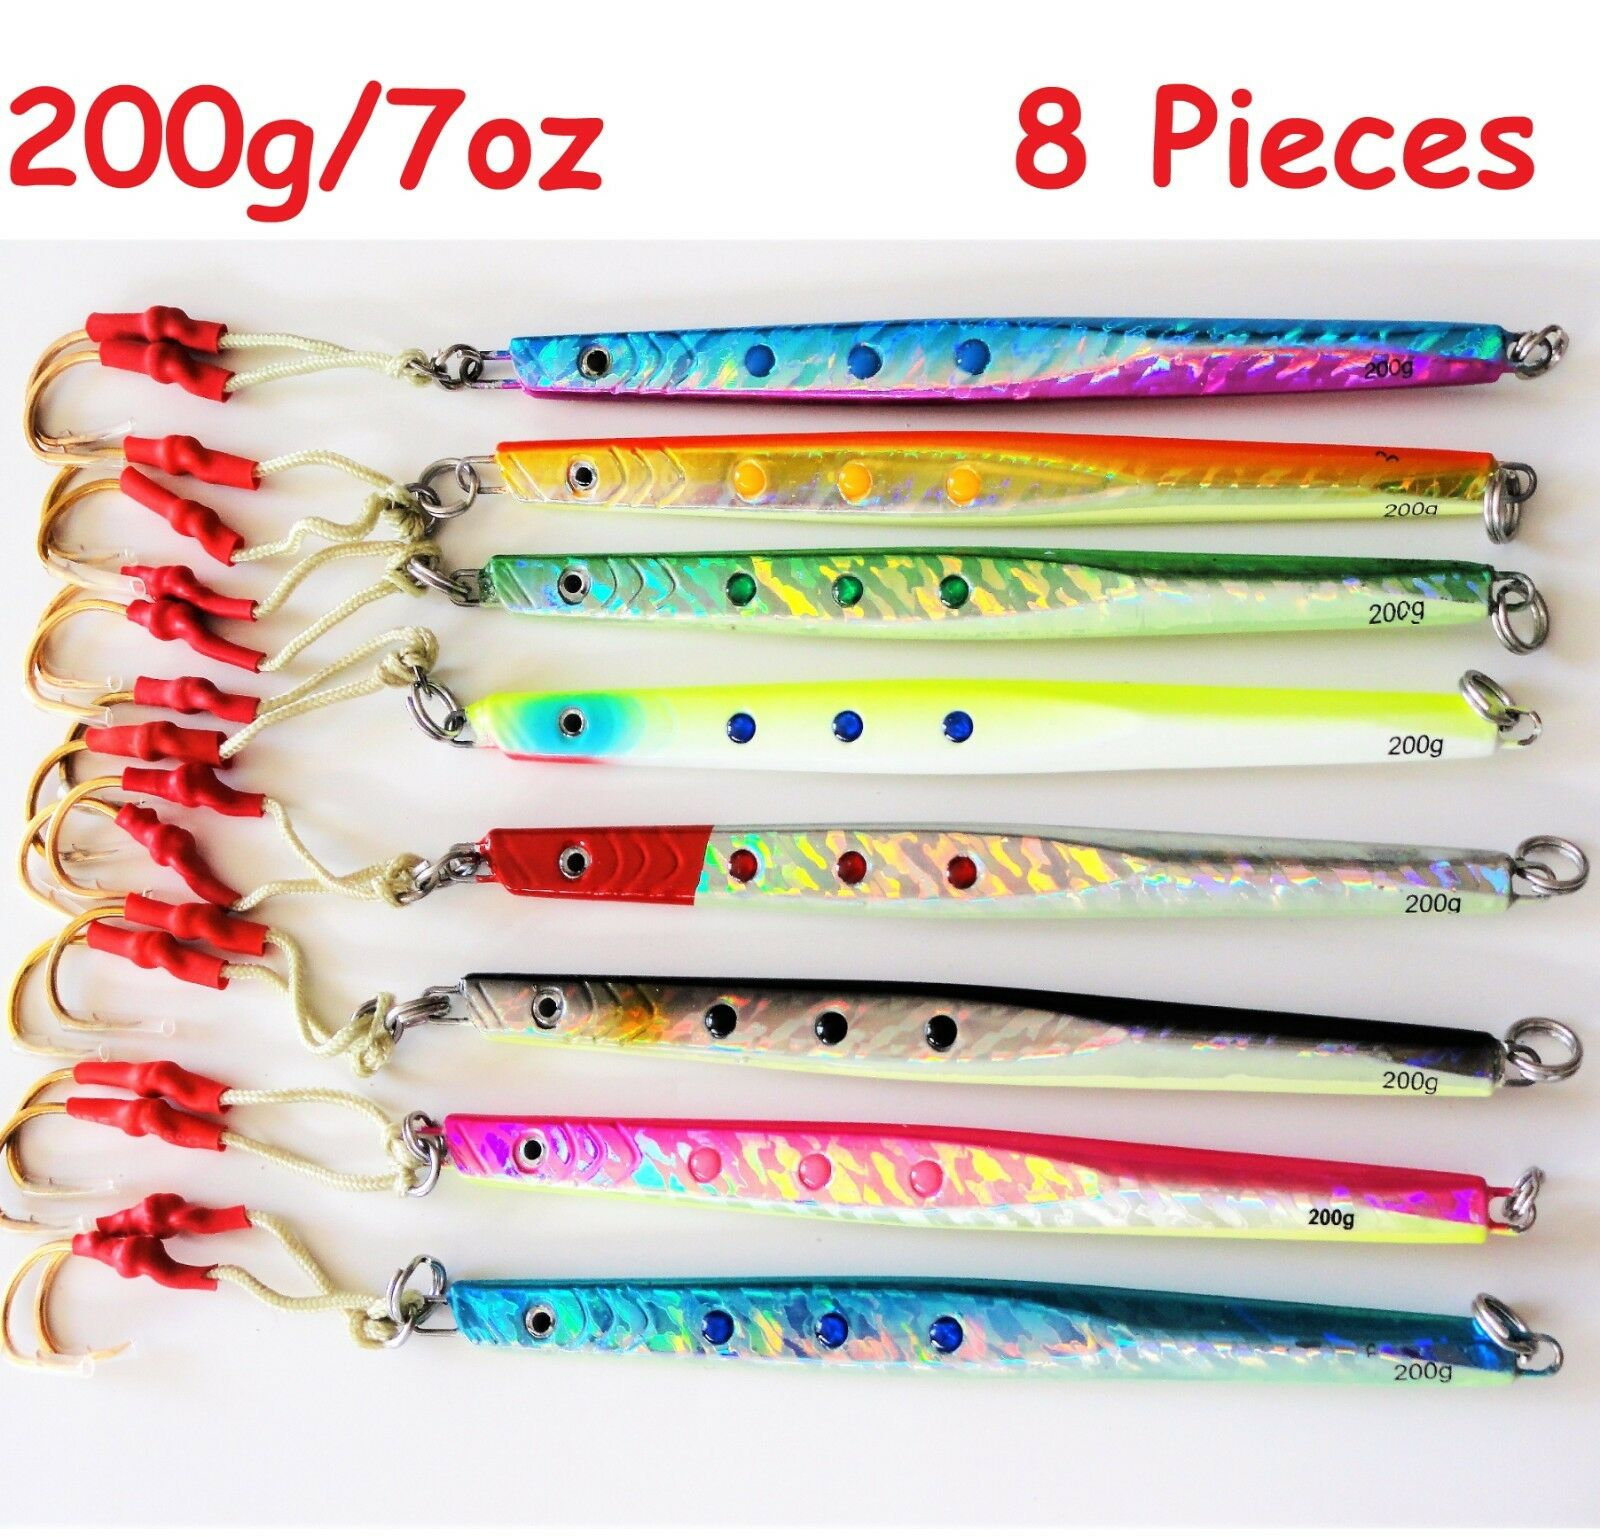 8 pcs 7oz  200g 8.5  Speed greenical Knife Butterfly Jigs Saltwater Fish lures